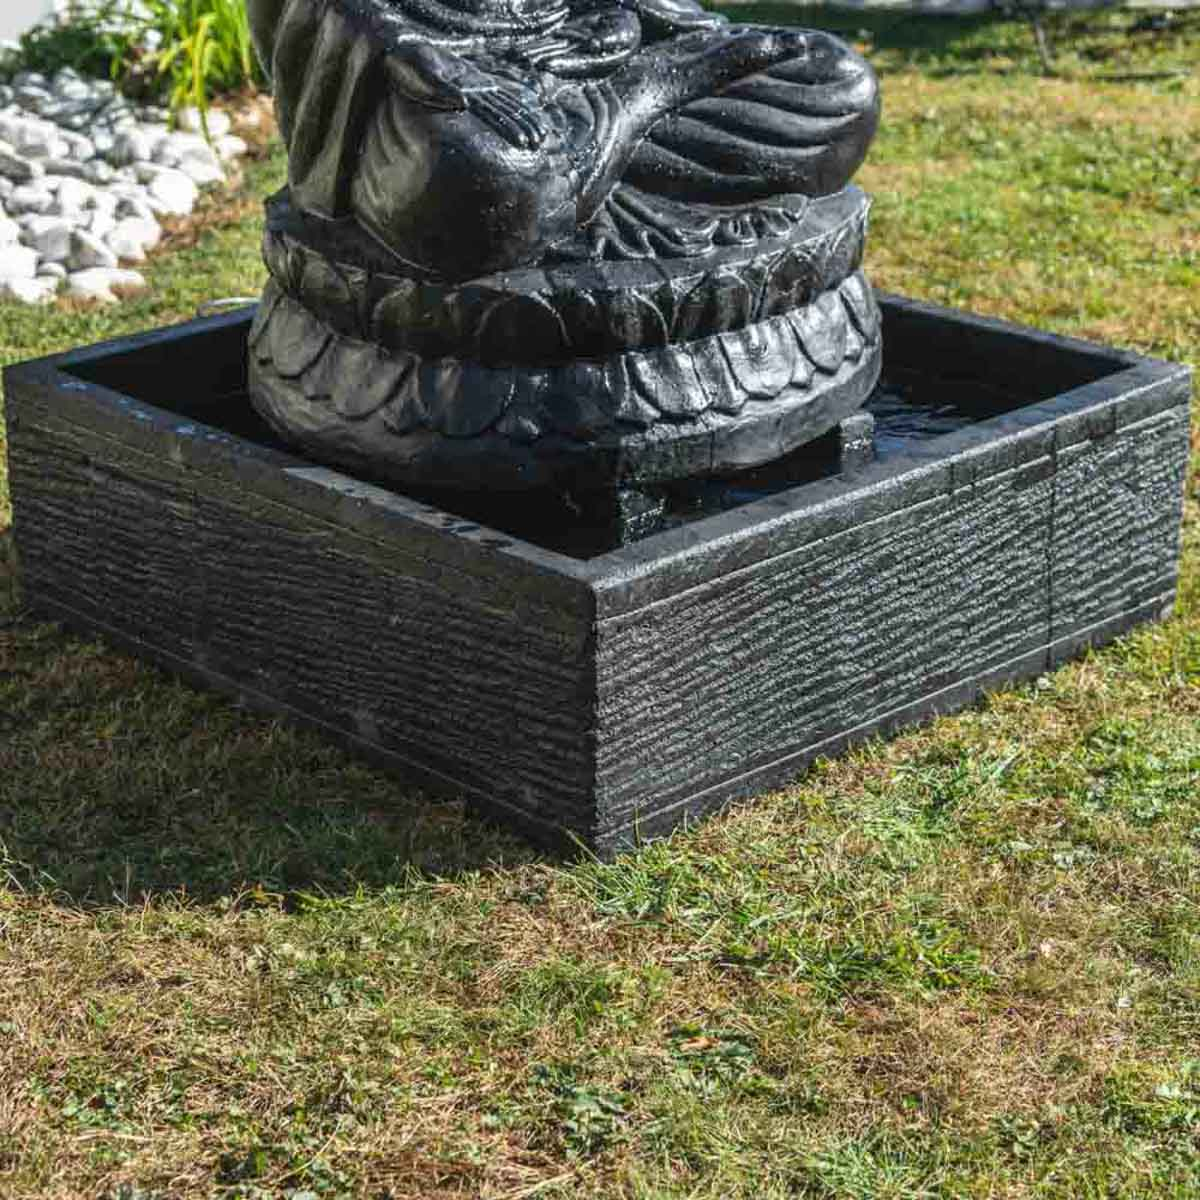 bouddha deco jardin grande statue de ganesh en pierre de. Black Bedroom Furniture Sets. Home Design Ideas